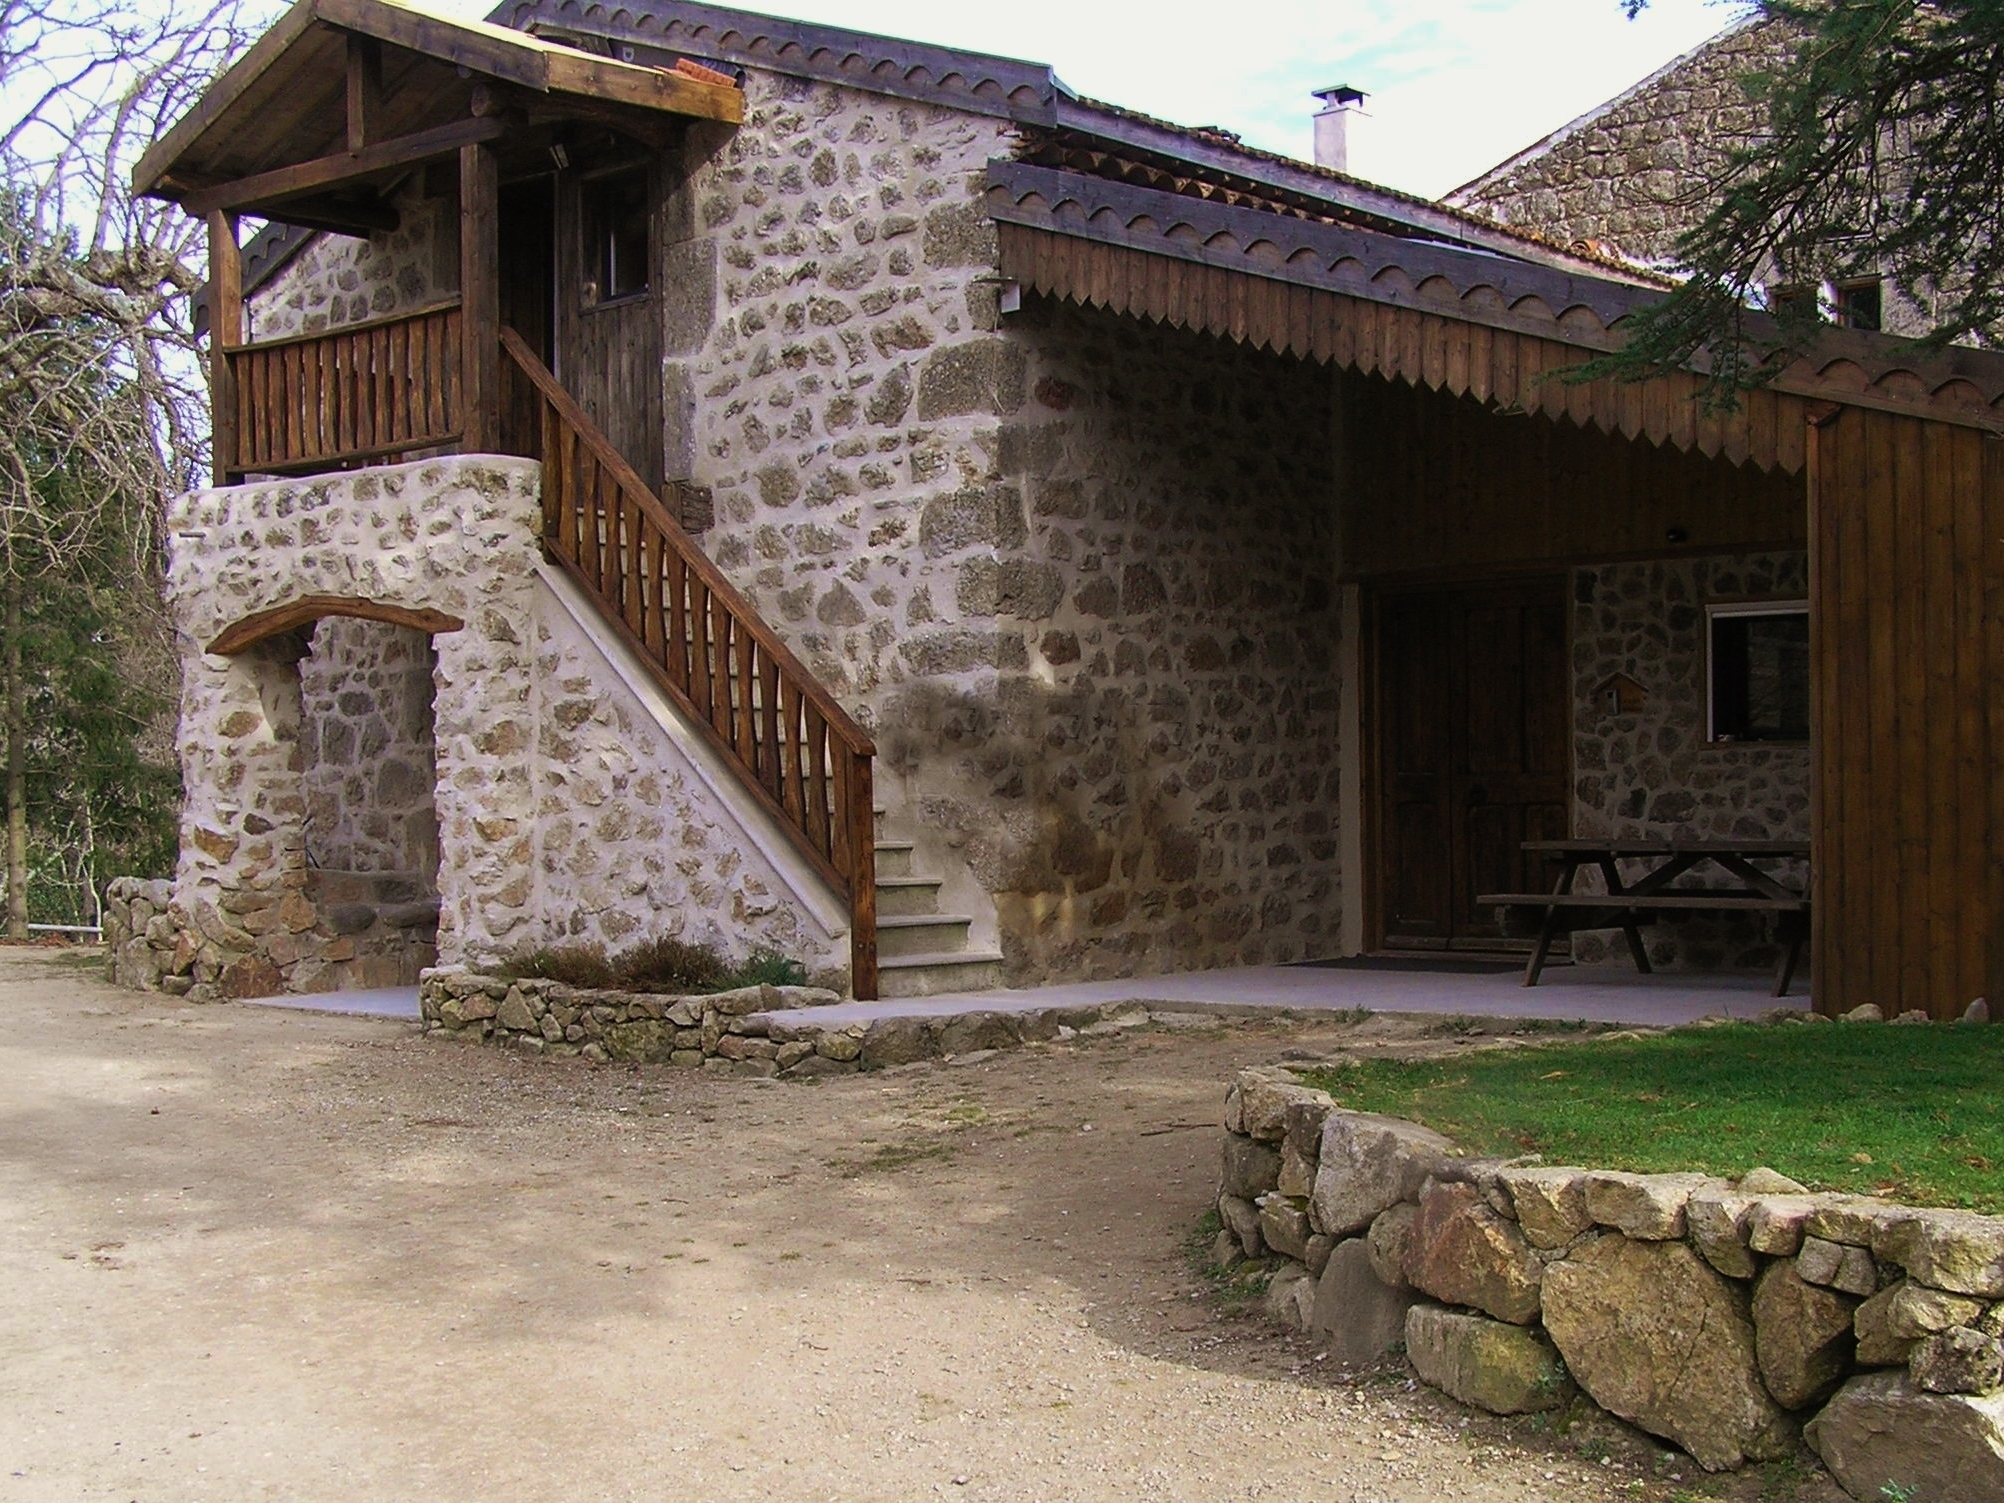 Holiday rentals for groups : Domaine du Pray d'Aunay - gîte d'étape (9 pers.)